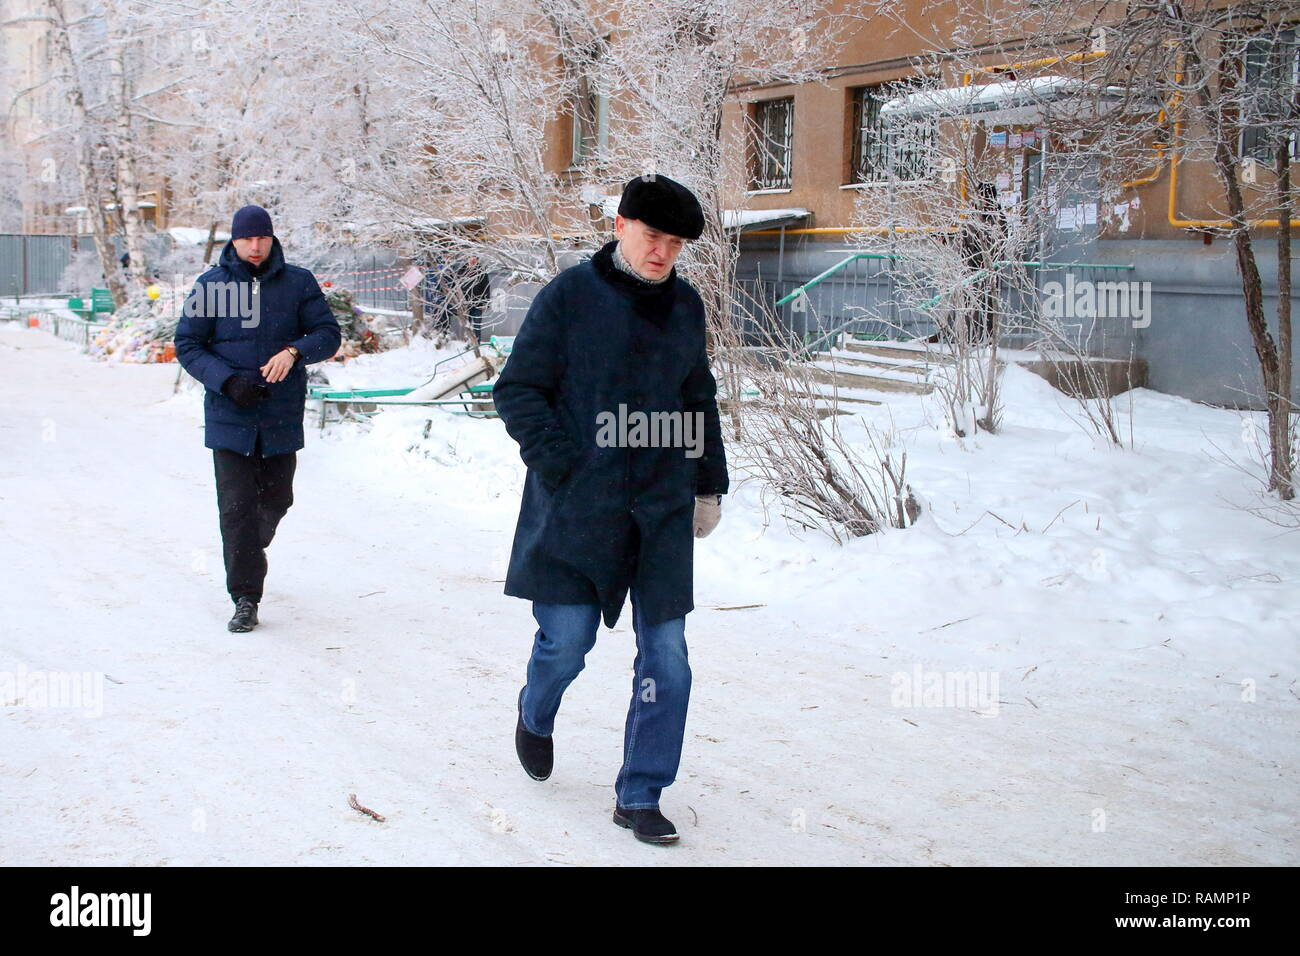 Magnitogorsk, Russia. 04th Jan, 2019. MAGNITOGORSK, RUSSIA - JANUARY 4, 2019: The Governor of Chelyabinsk Region, Boris Dubrovsky (front), outside a partially collapsed building at 164 Karla Marksa Street in the city of Magnitogorsk; a section of the ten-storeyed apartment block collapsed early on 31 December 2018 following a gas explosion; 39 people died in the accident. Valery Sherdyukov/TASS Credit: ITAR-TASS News Agency/Alamy Live News - Stock Image